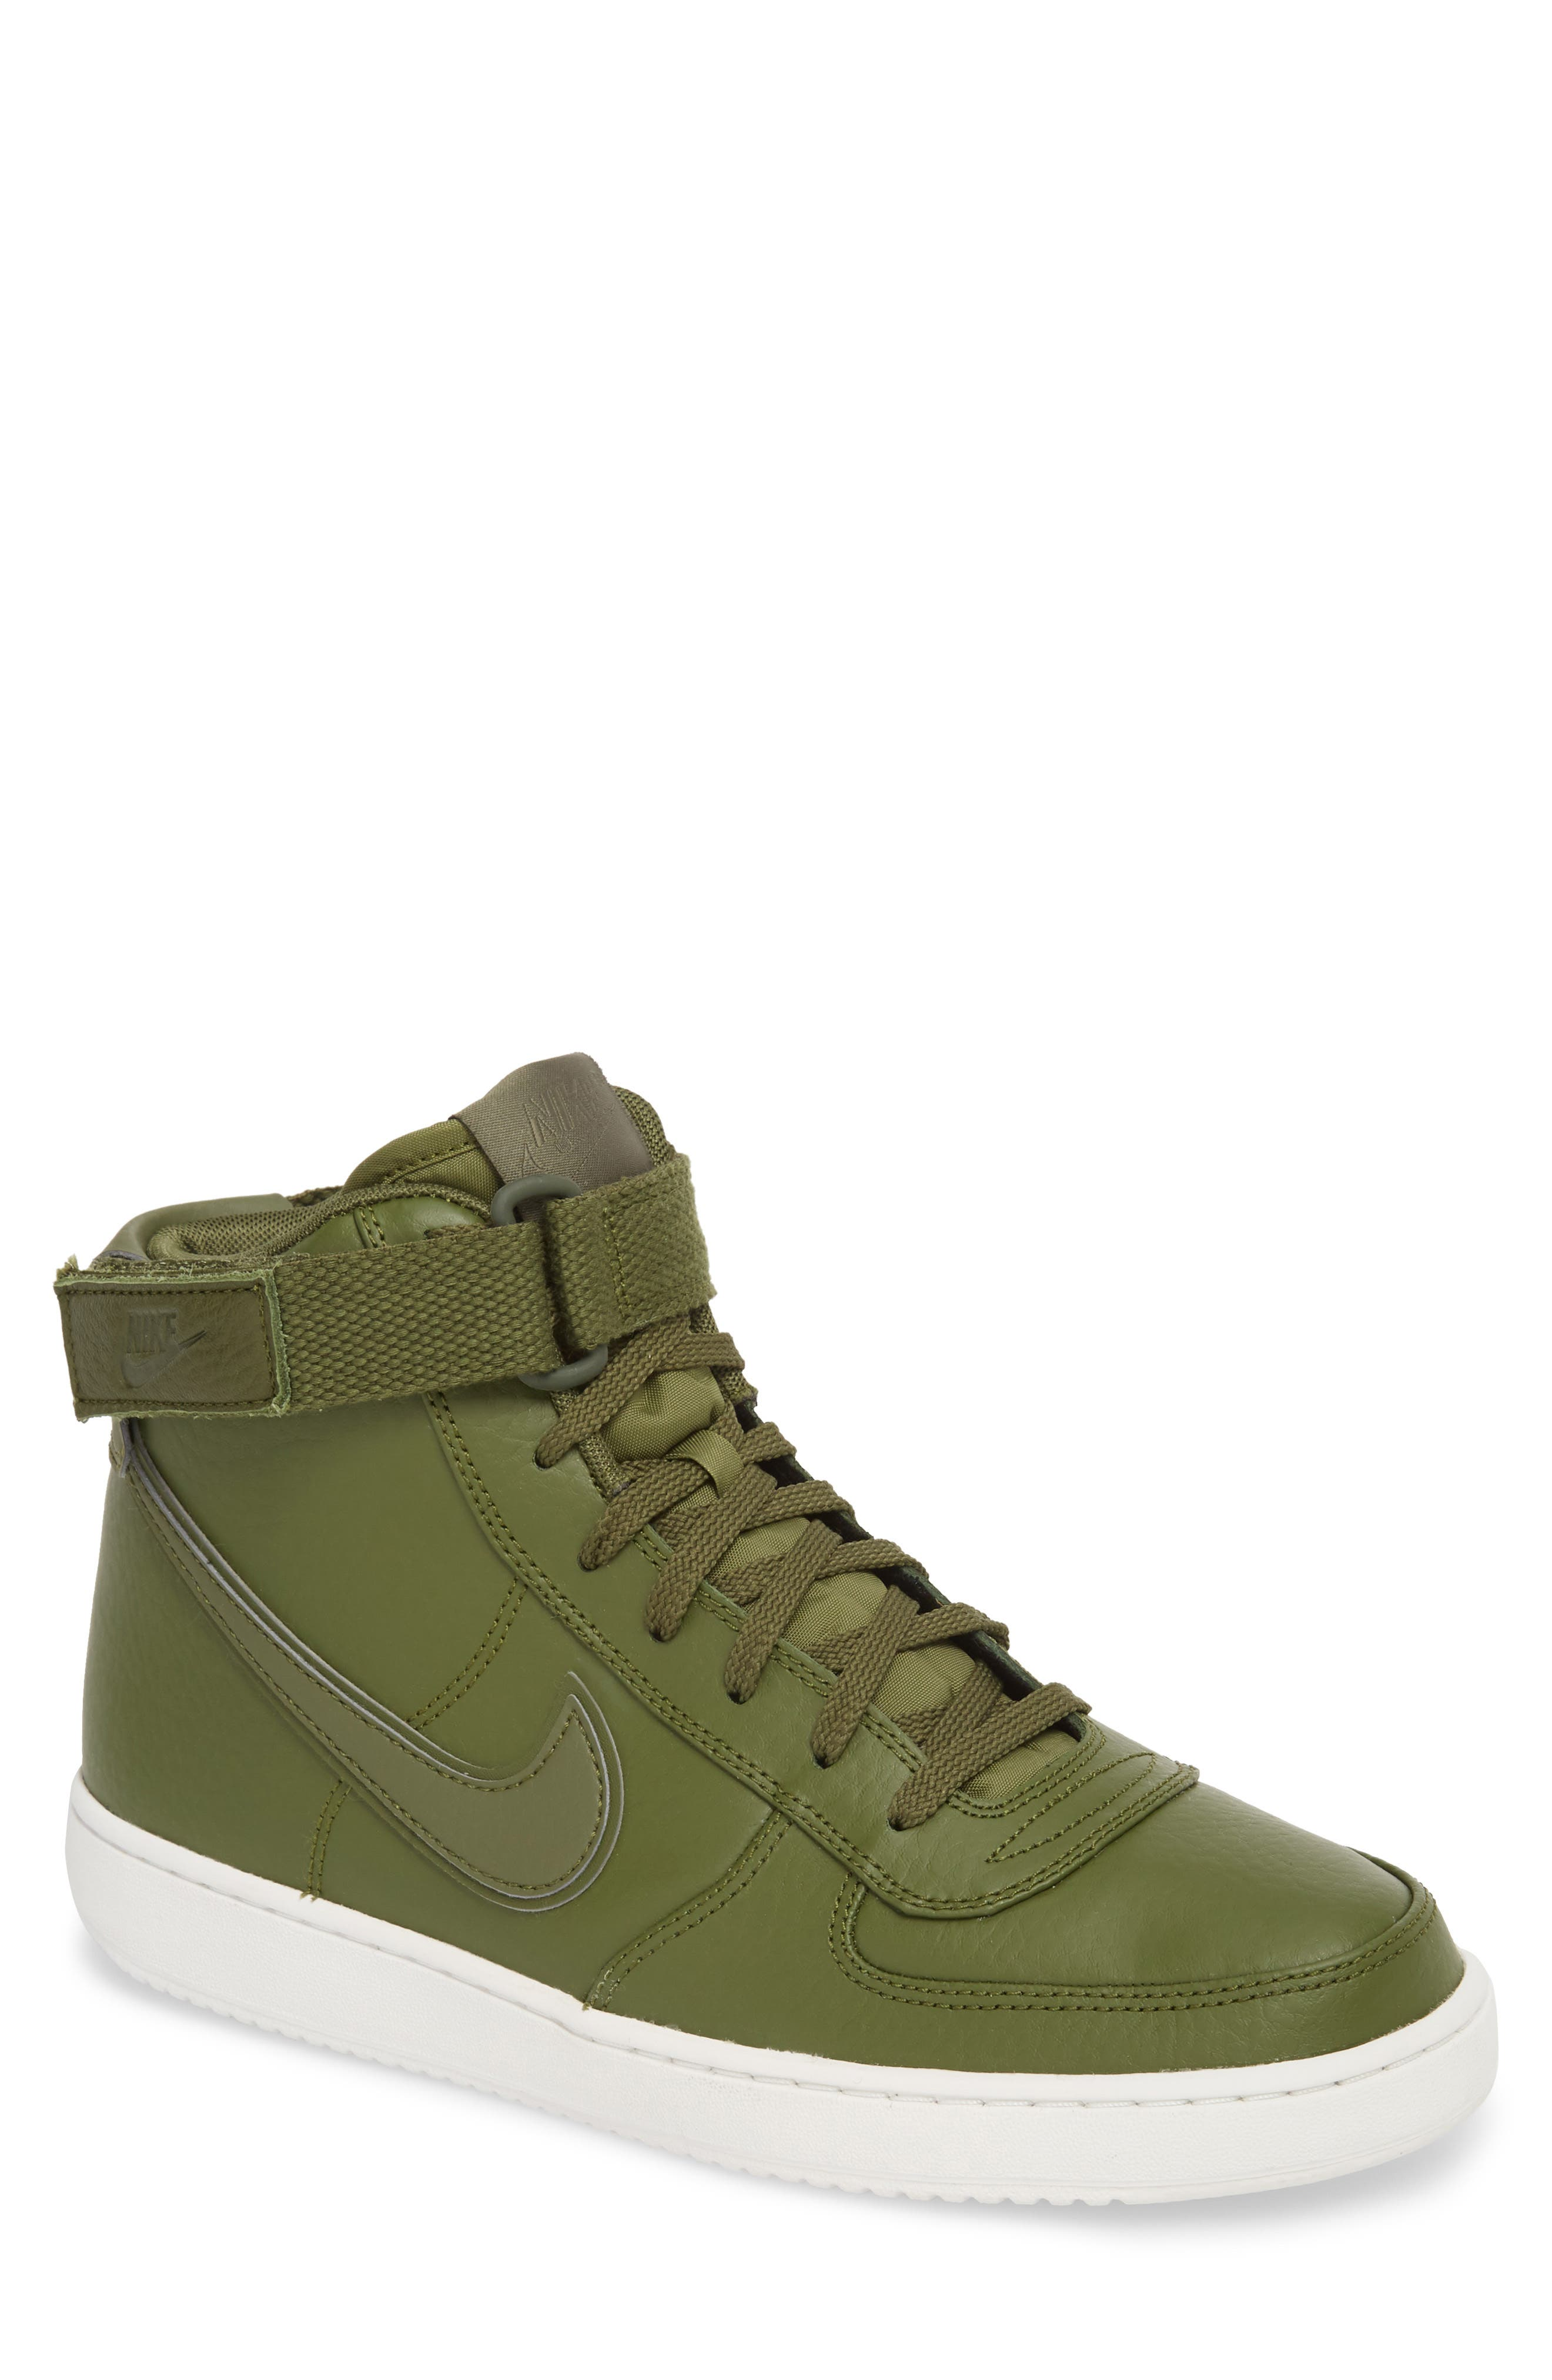 Vandal High Supreme Leather Sneaker,                             Main thumbnail 1, color,                             Legion Green/ Summit White